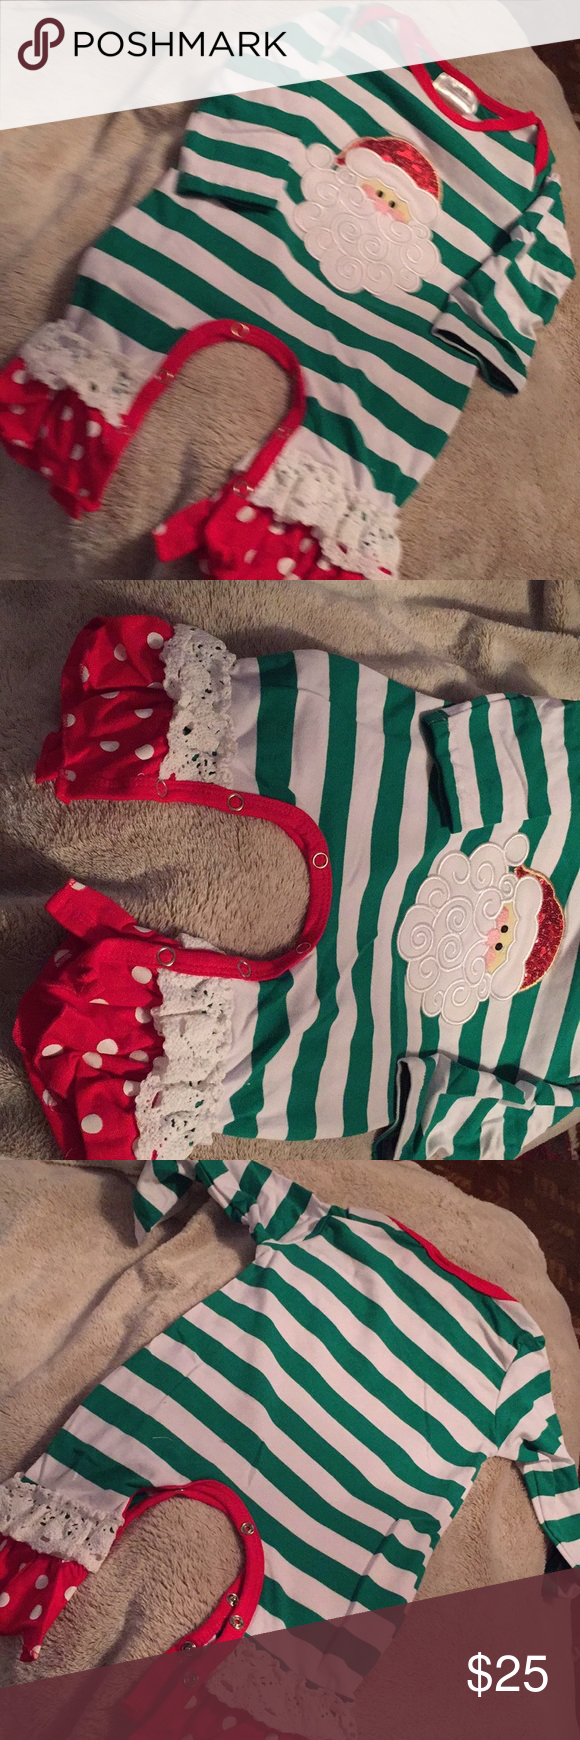 Girls Christmas onesie- green and white stripes Cute infants girl Christmas  outfit. All in one with snaps at the legs. Outfit is green and white stripes  ... c0206a599